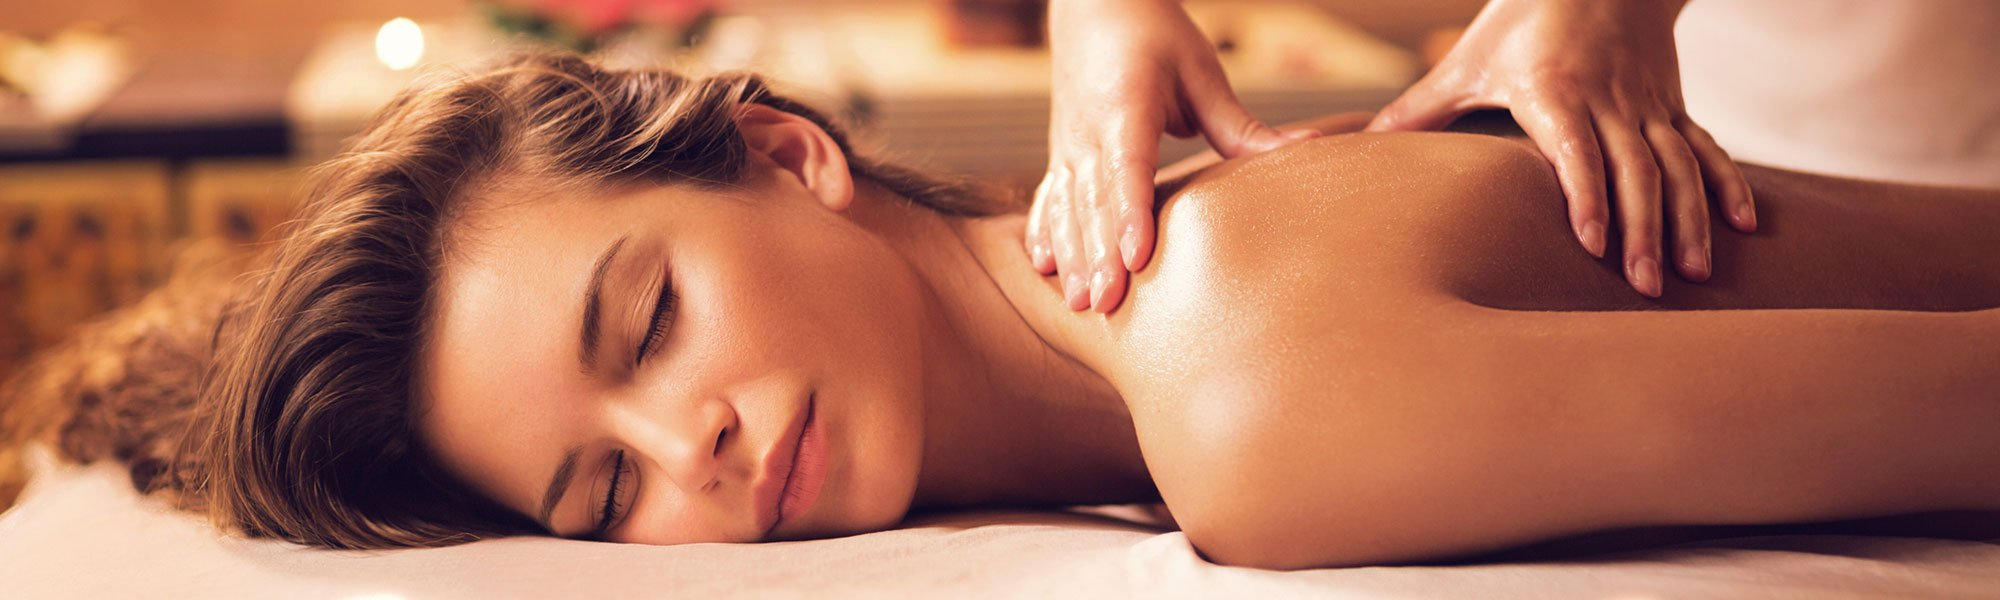 Hotel Los Gatos - Verde Touch Spa: Massages, Sauna, Steam rooms